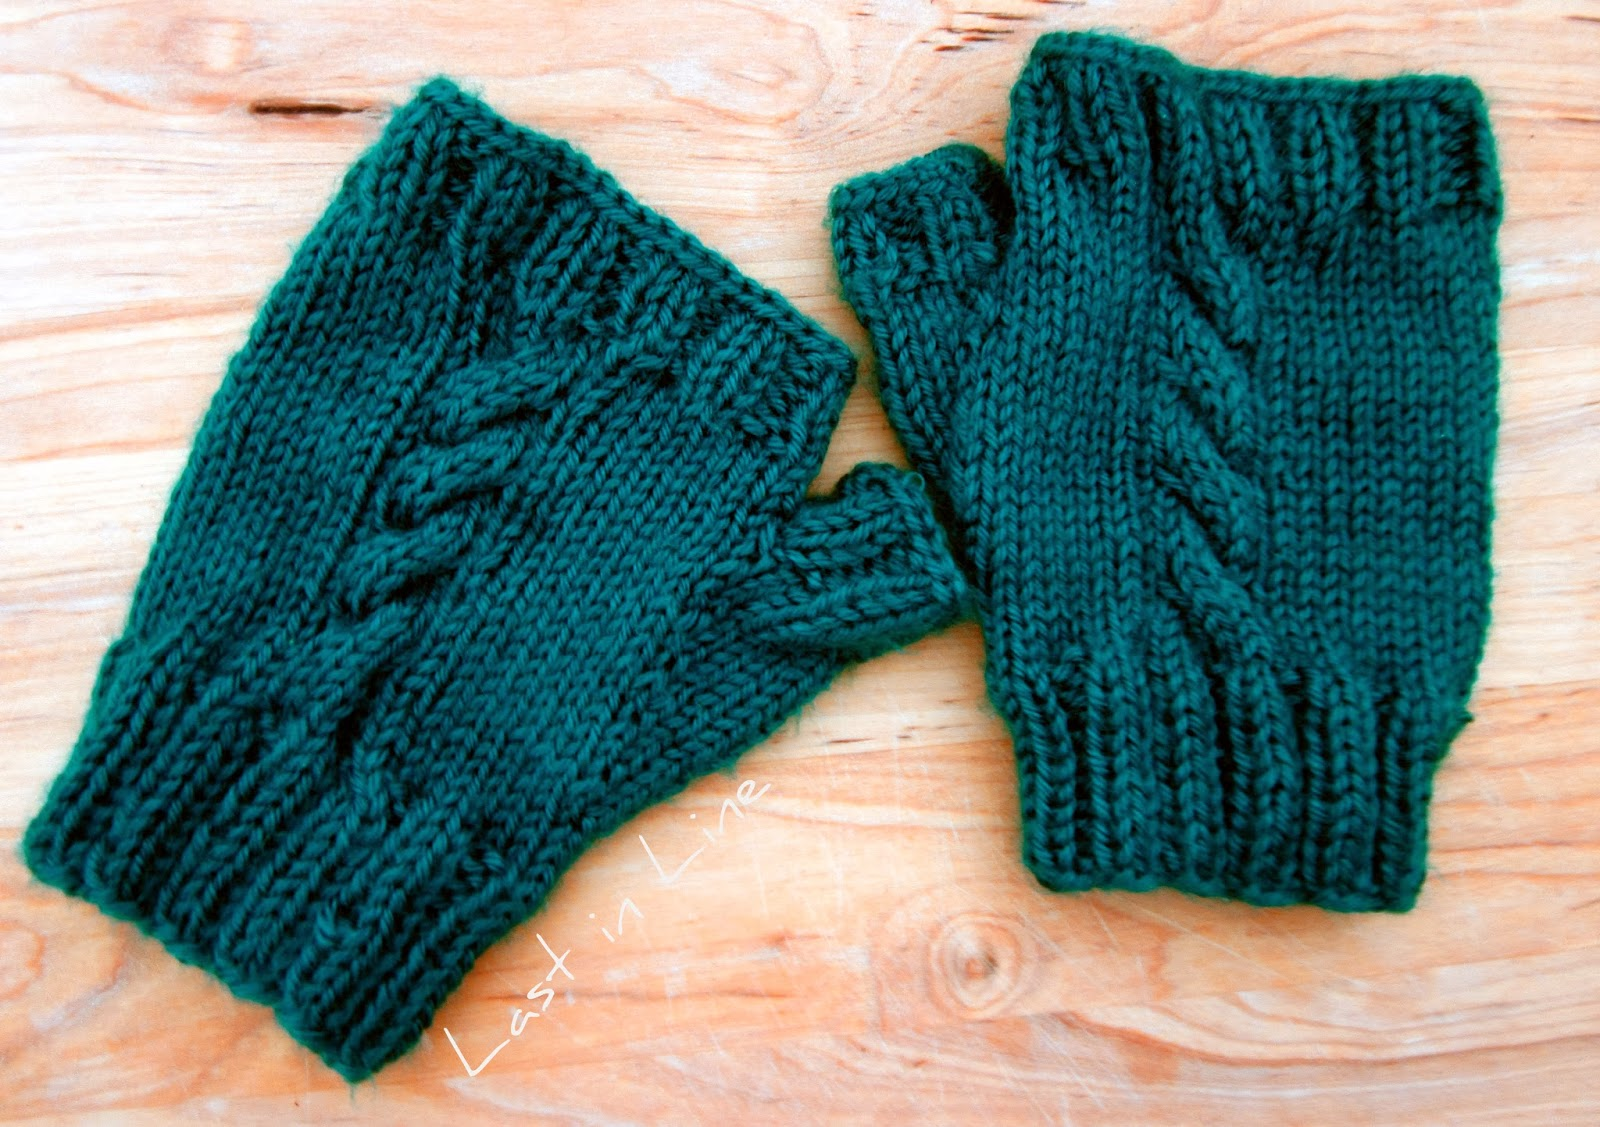 Forever Last In Line: Knit Some Cozy Mitts: Free Pattern